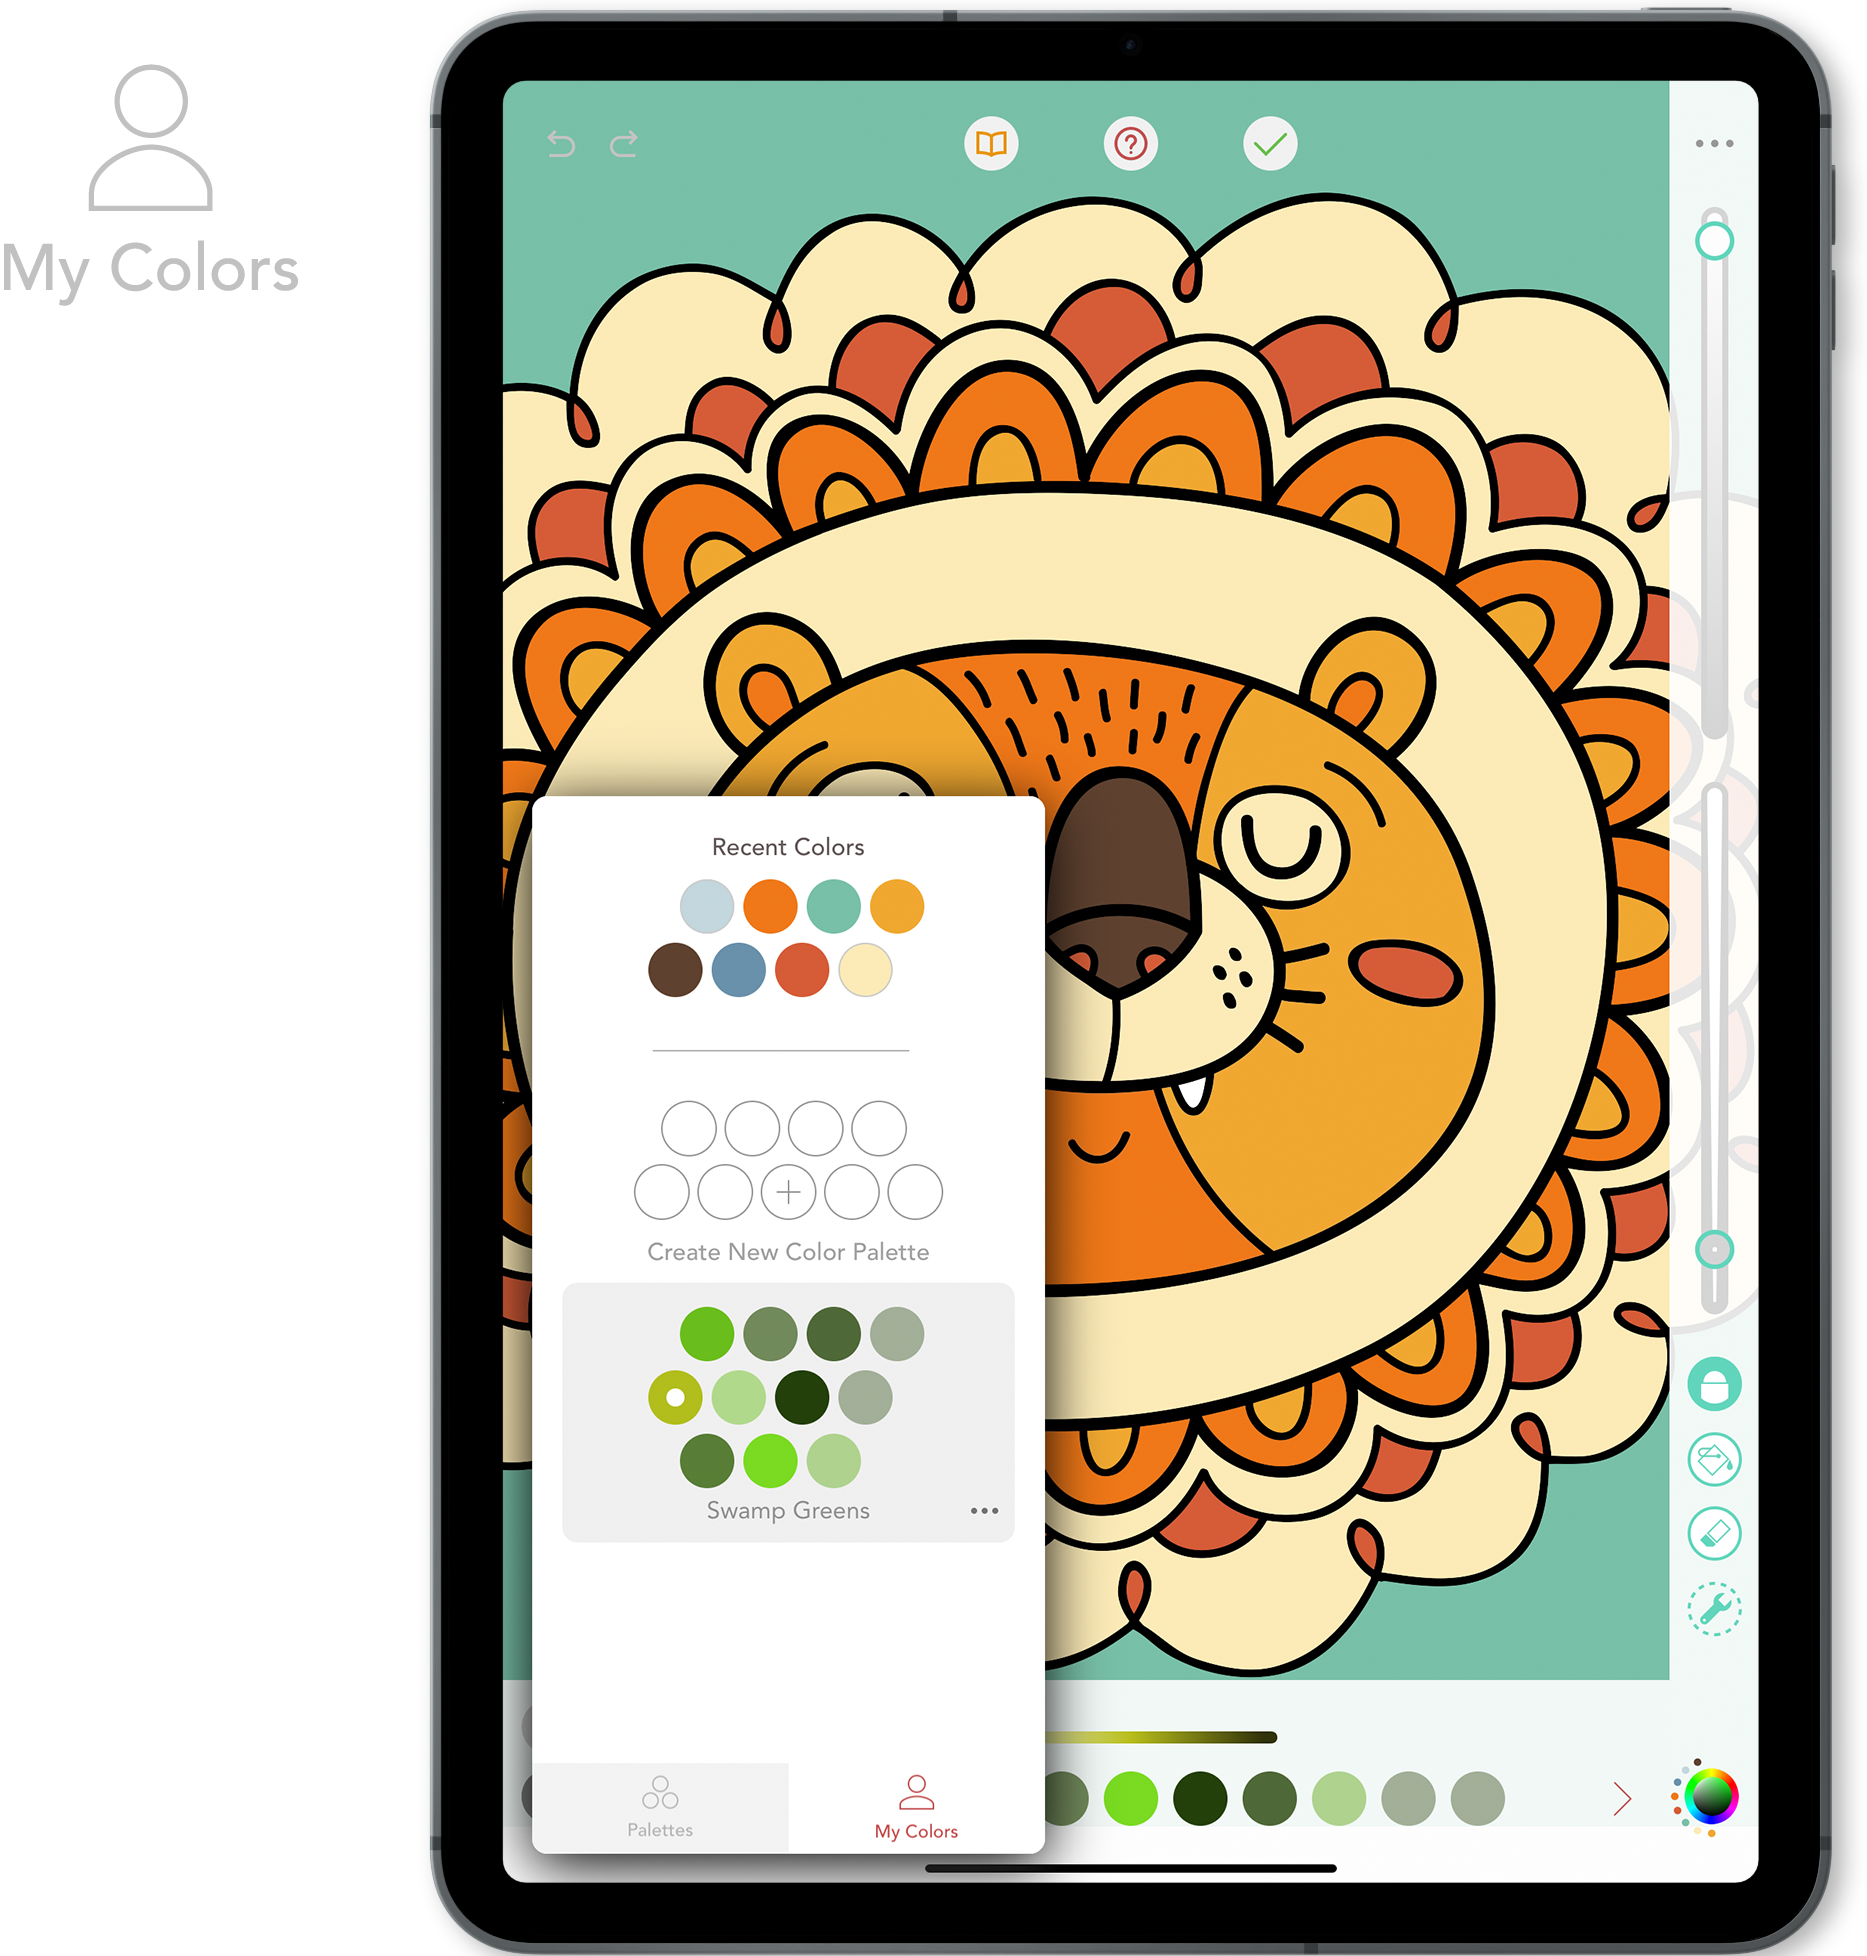 My Colors - When you have created your first color palette, the My Colors tab will appear in the Color Palette menu. Here you will find the custom palettes you have created.From this panel you can create a new palette and Delete, Copy, or Edit an existing palette.